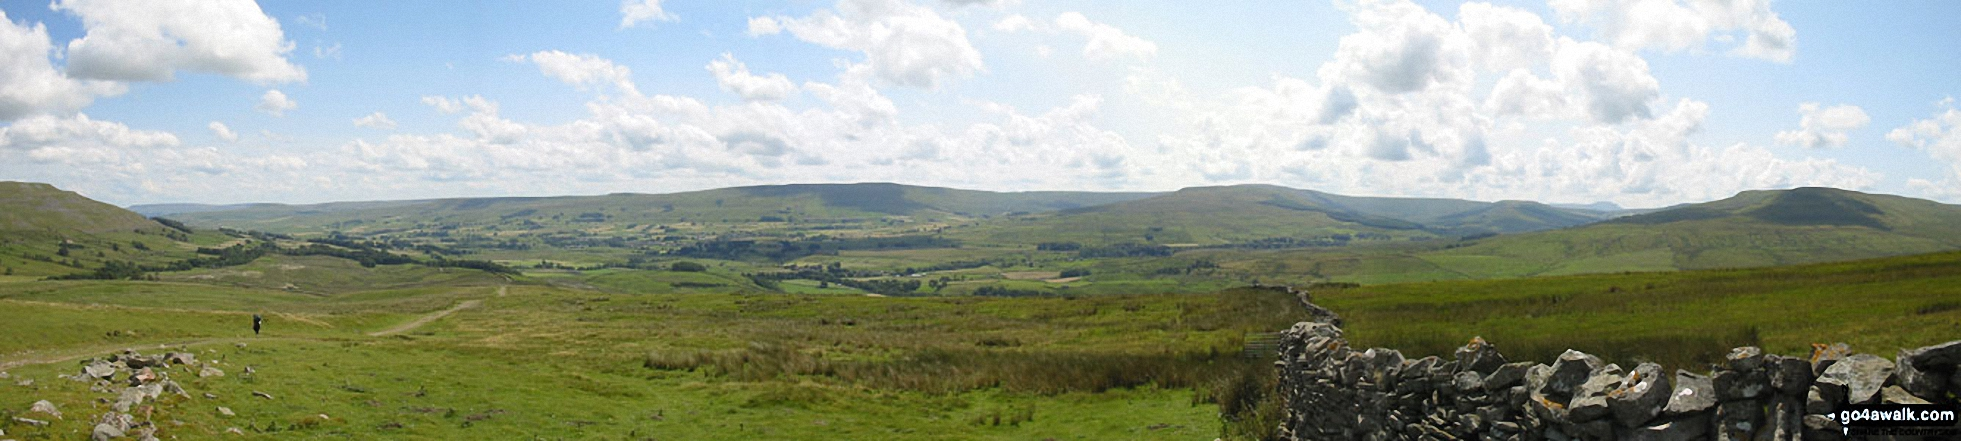 Wensleydale from Great Shunner Fell